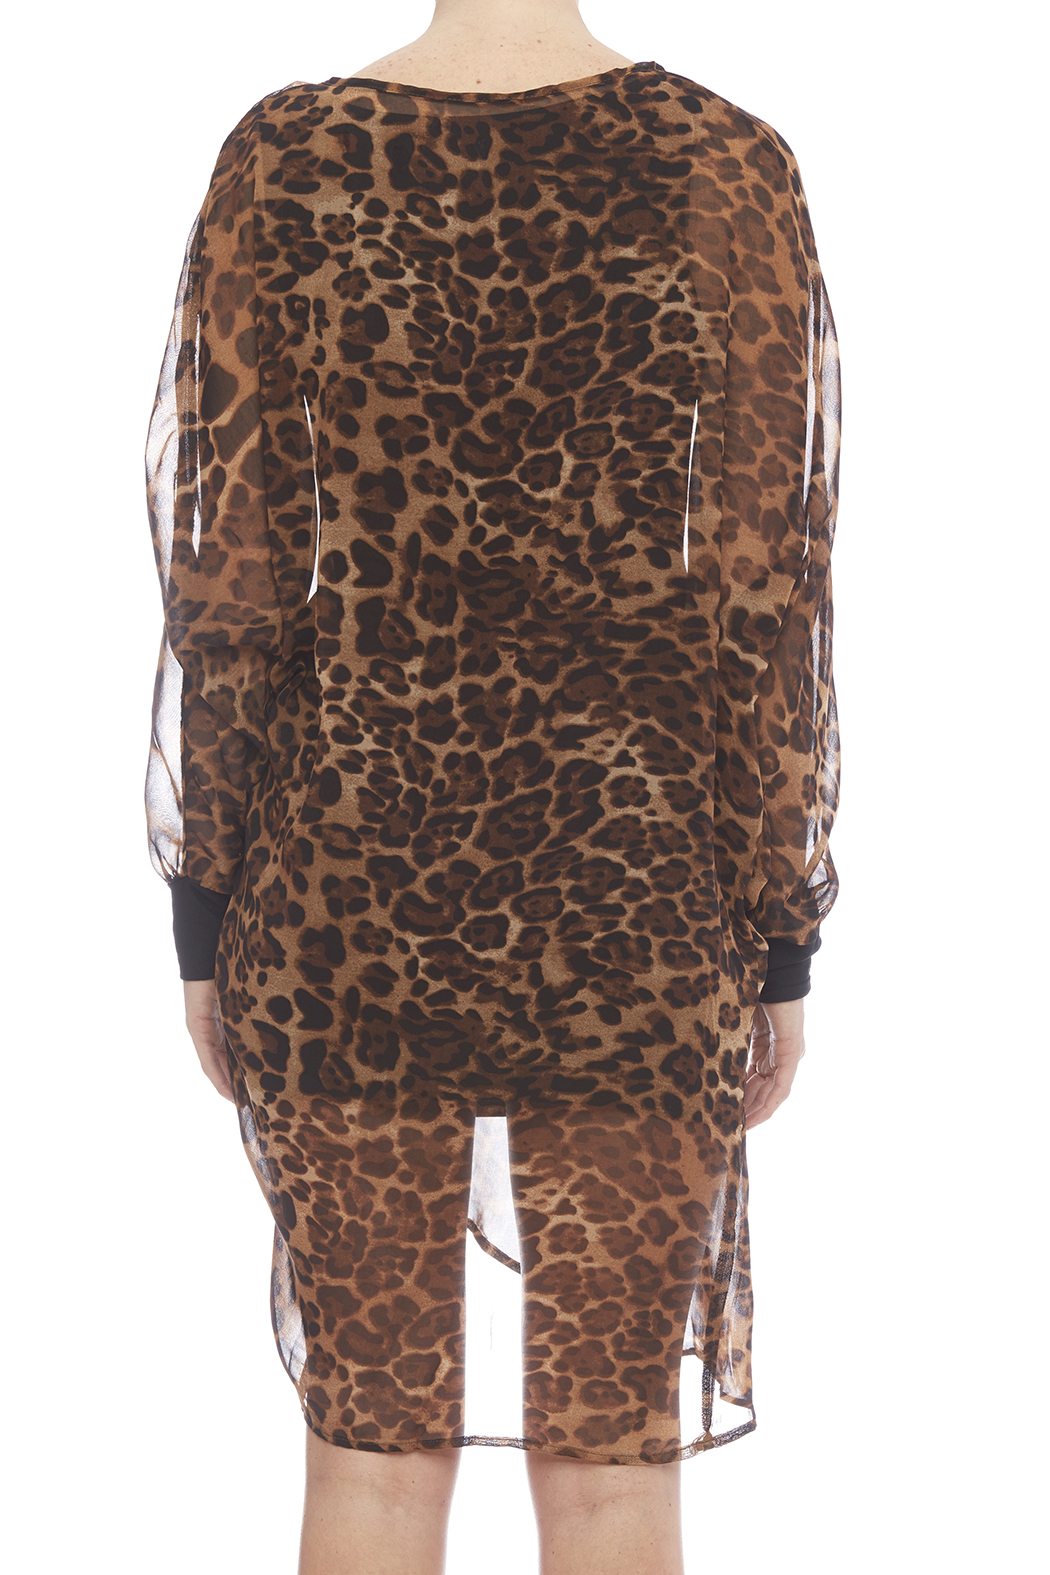 NU New York Chiffon Leopard Dress - Back Cropped Image